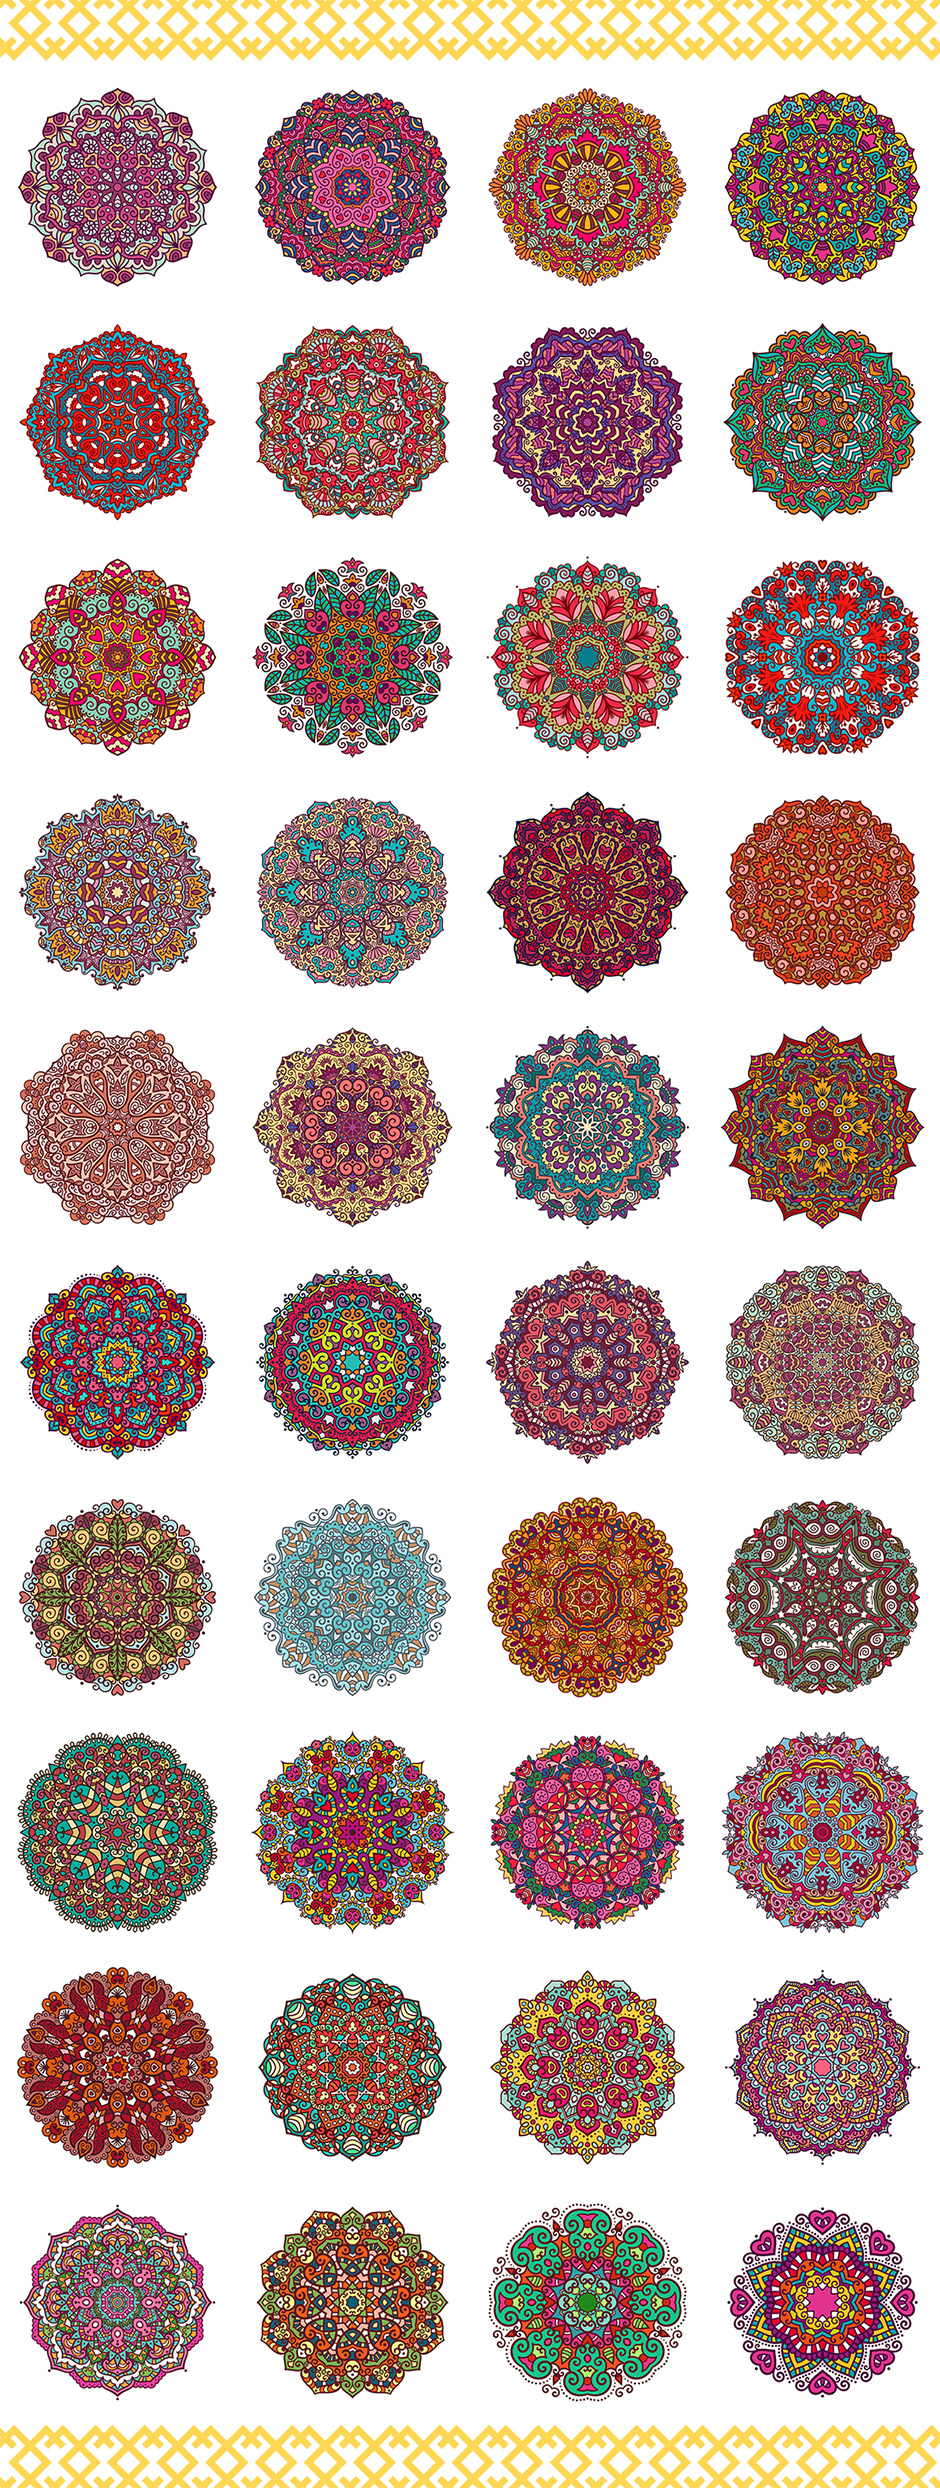 80 Vector Vintage Mandala Ornaments